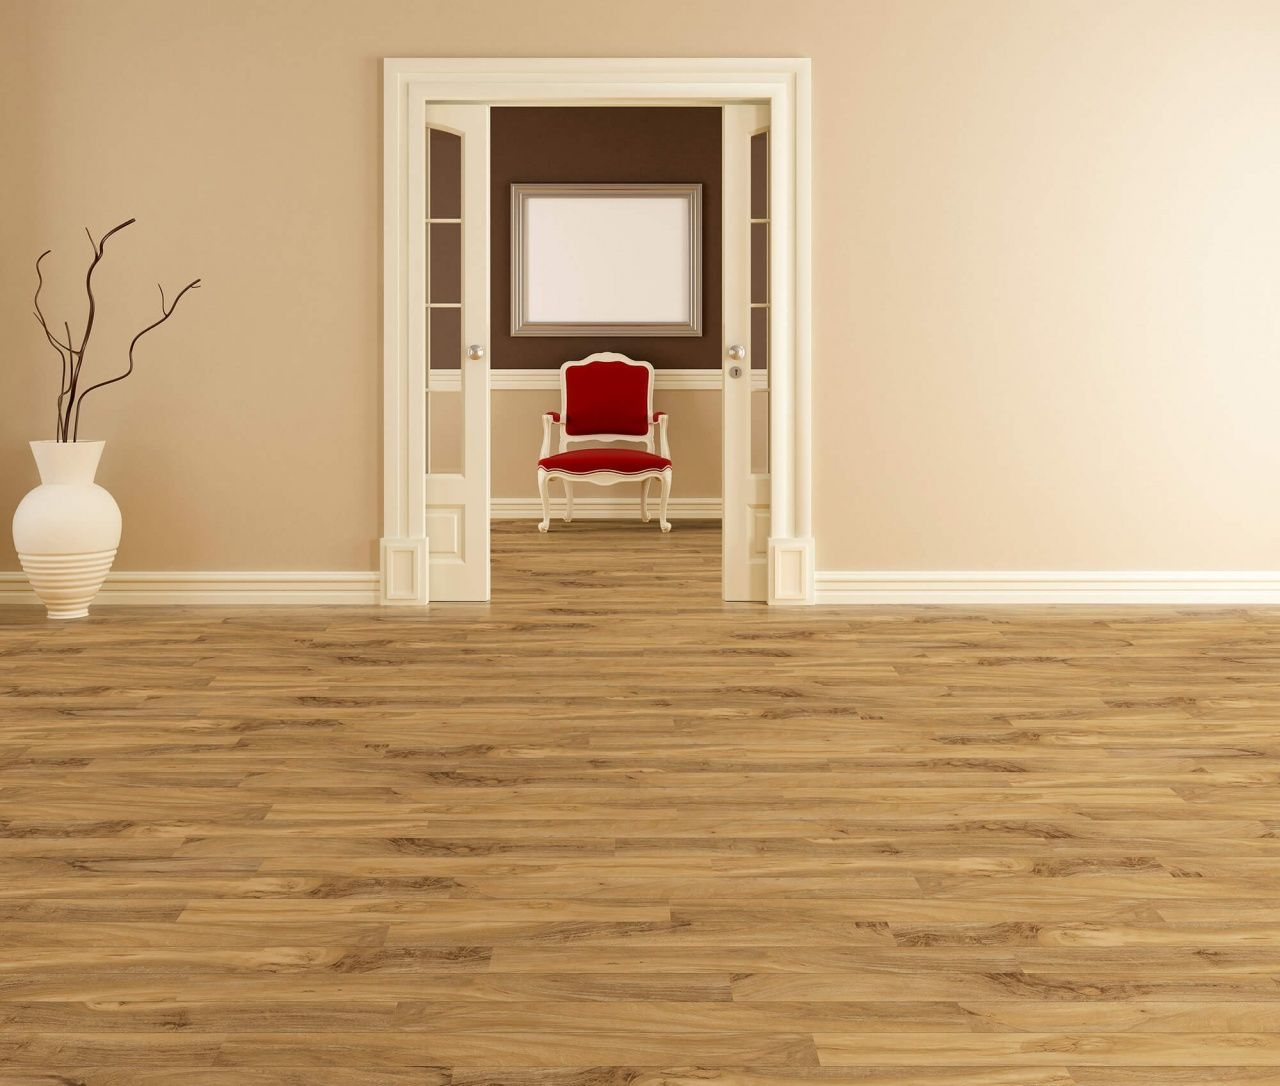 Floor and Decor Plano Texas Informations About Floor and Decor